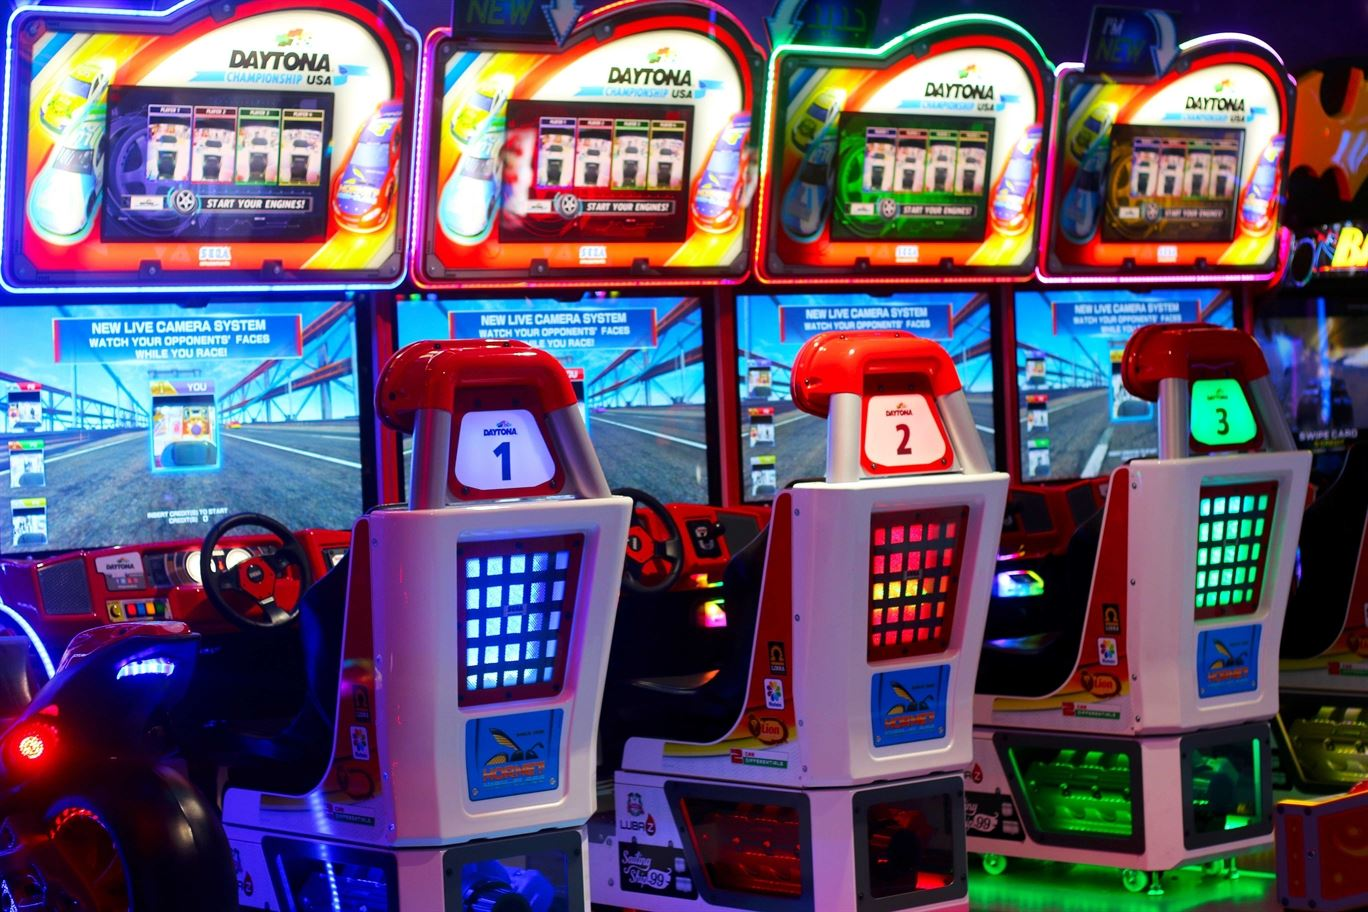 Daytona USA game at Mall of the Emirates